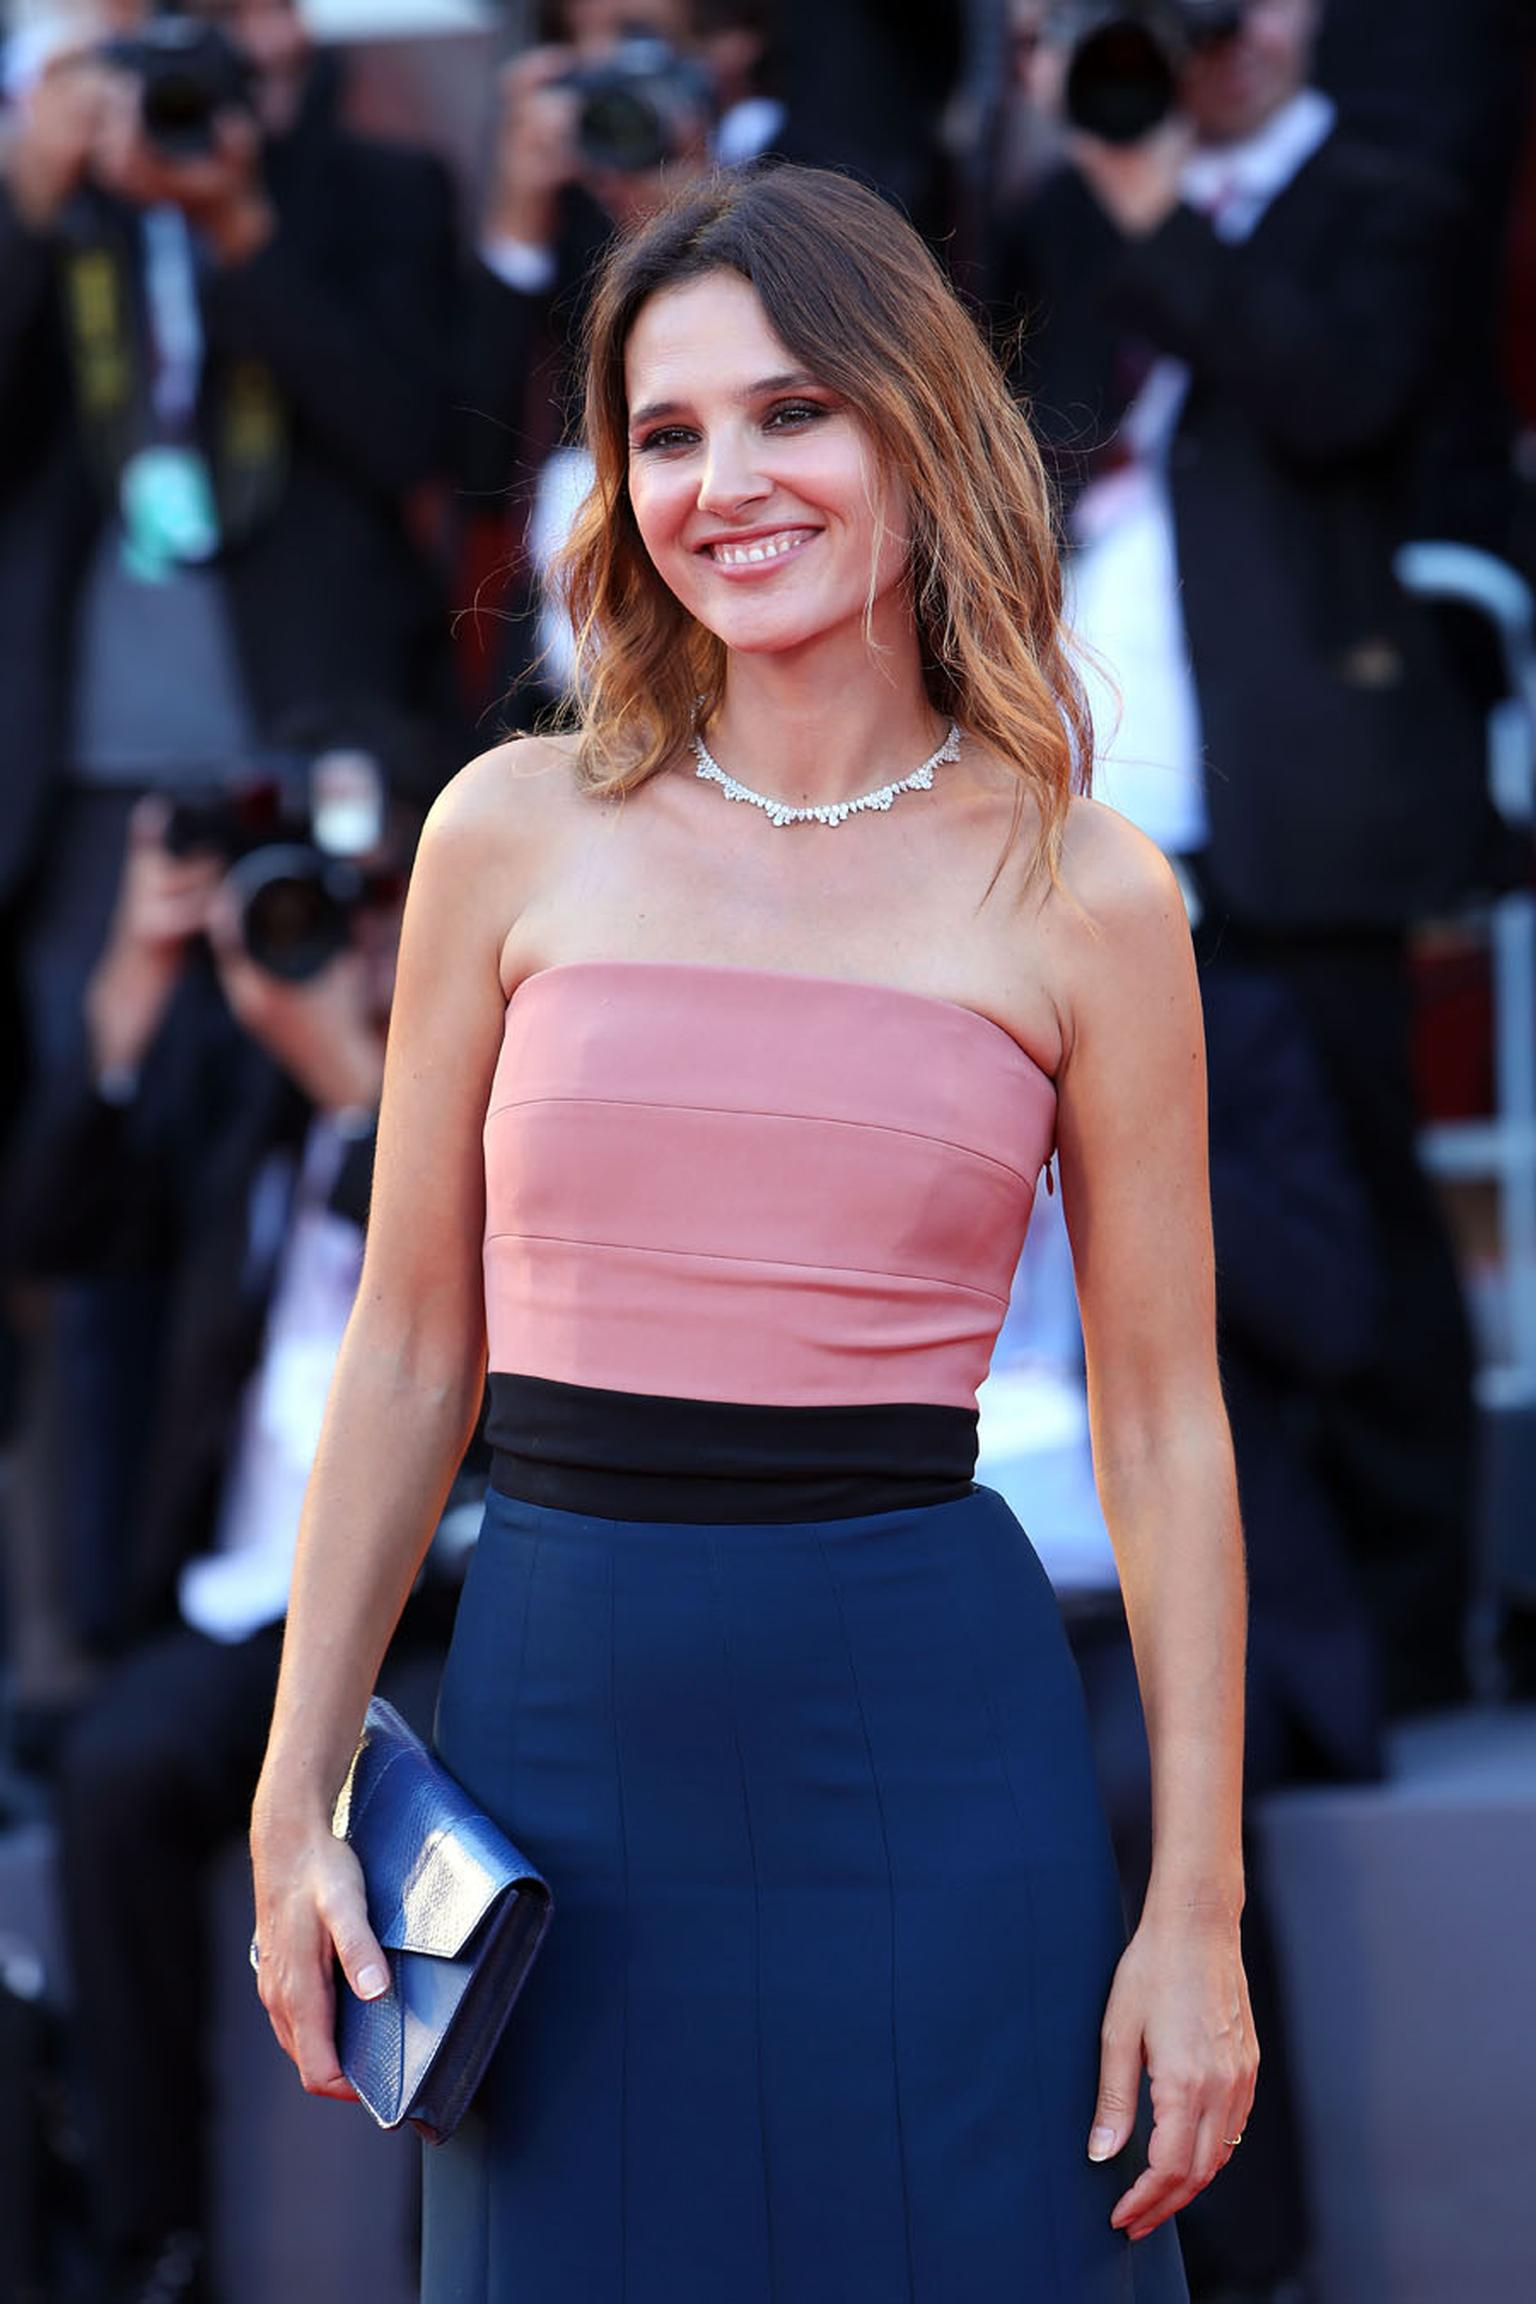 Actress Virginie Ledoyen became the second star to step out at an awards ceremony in Green Carpet Collection jewels by Chopard at the Venice Film Festival 2013